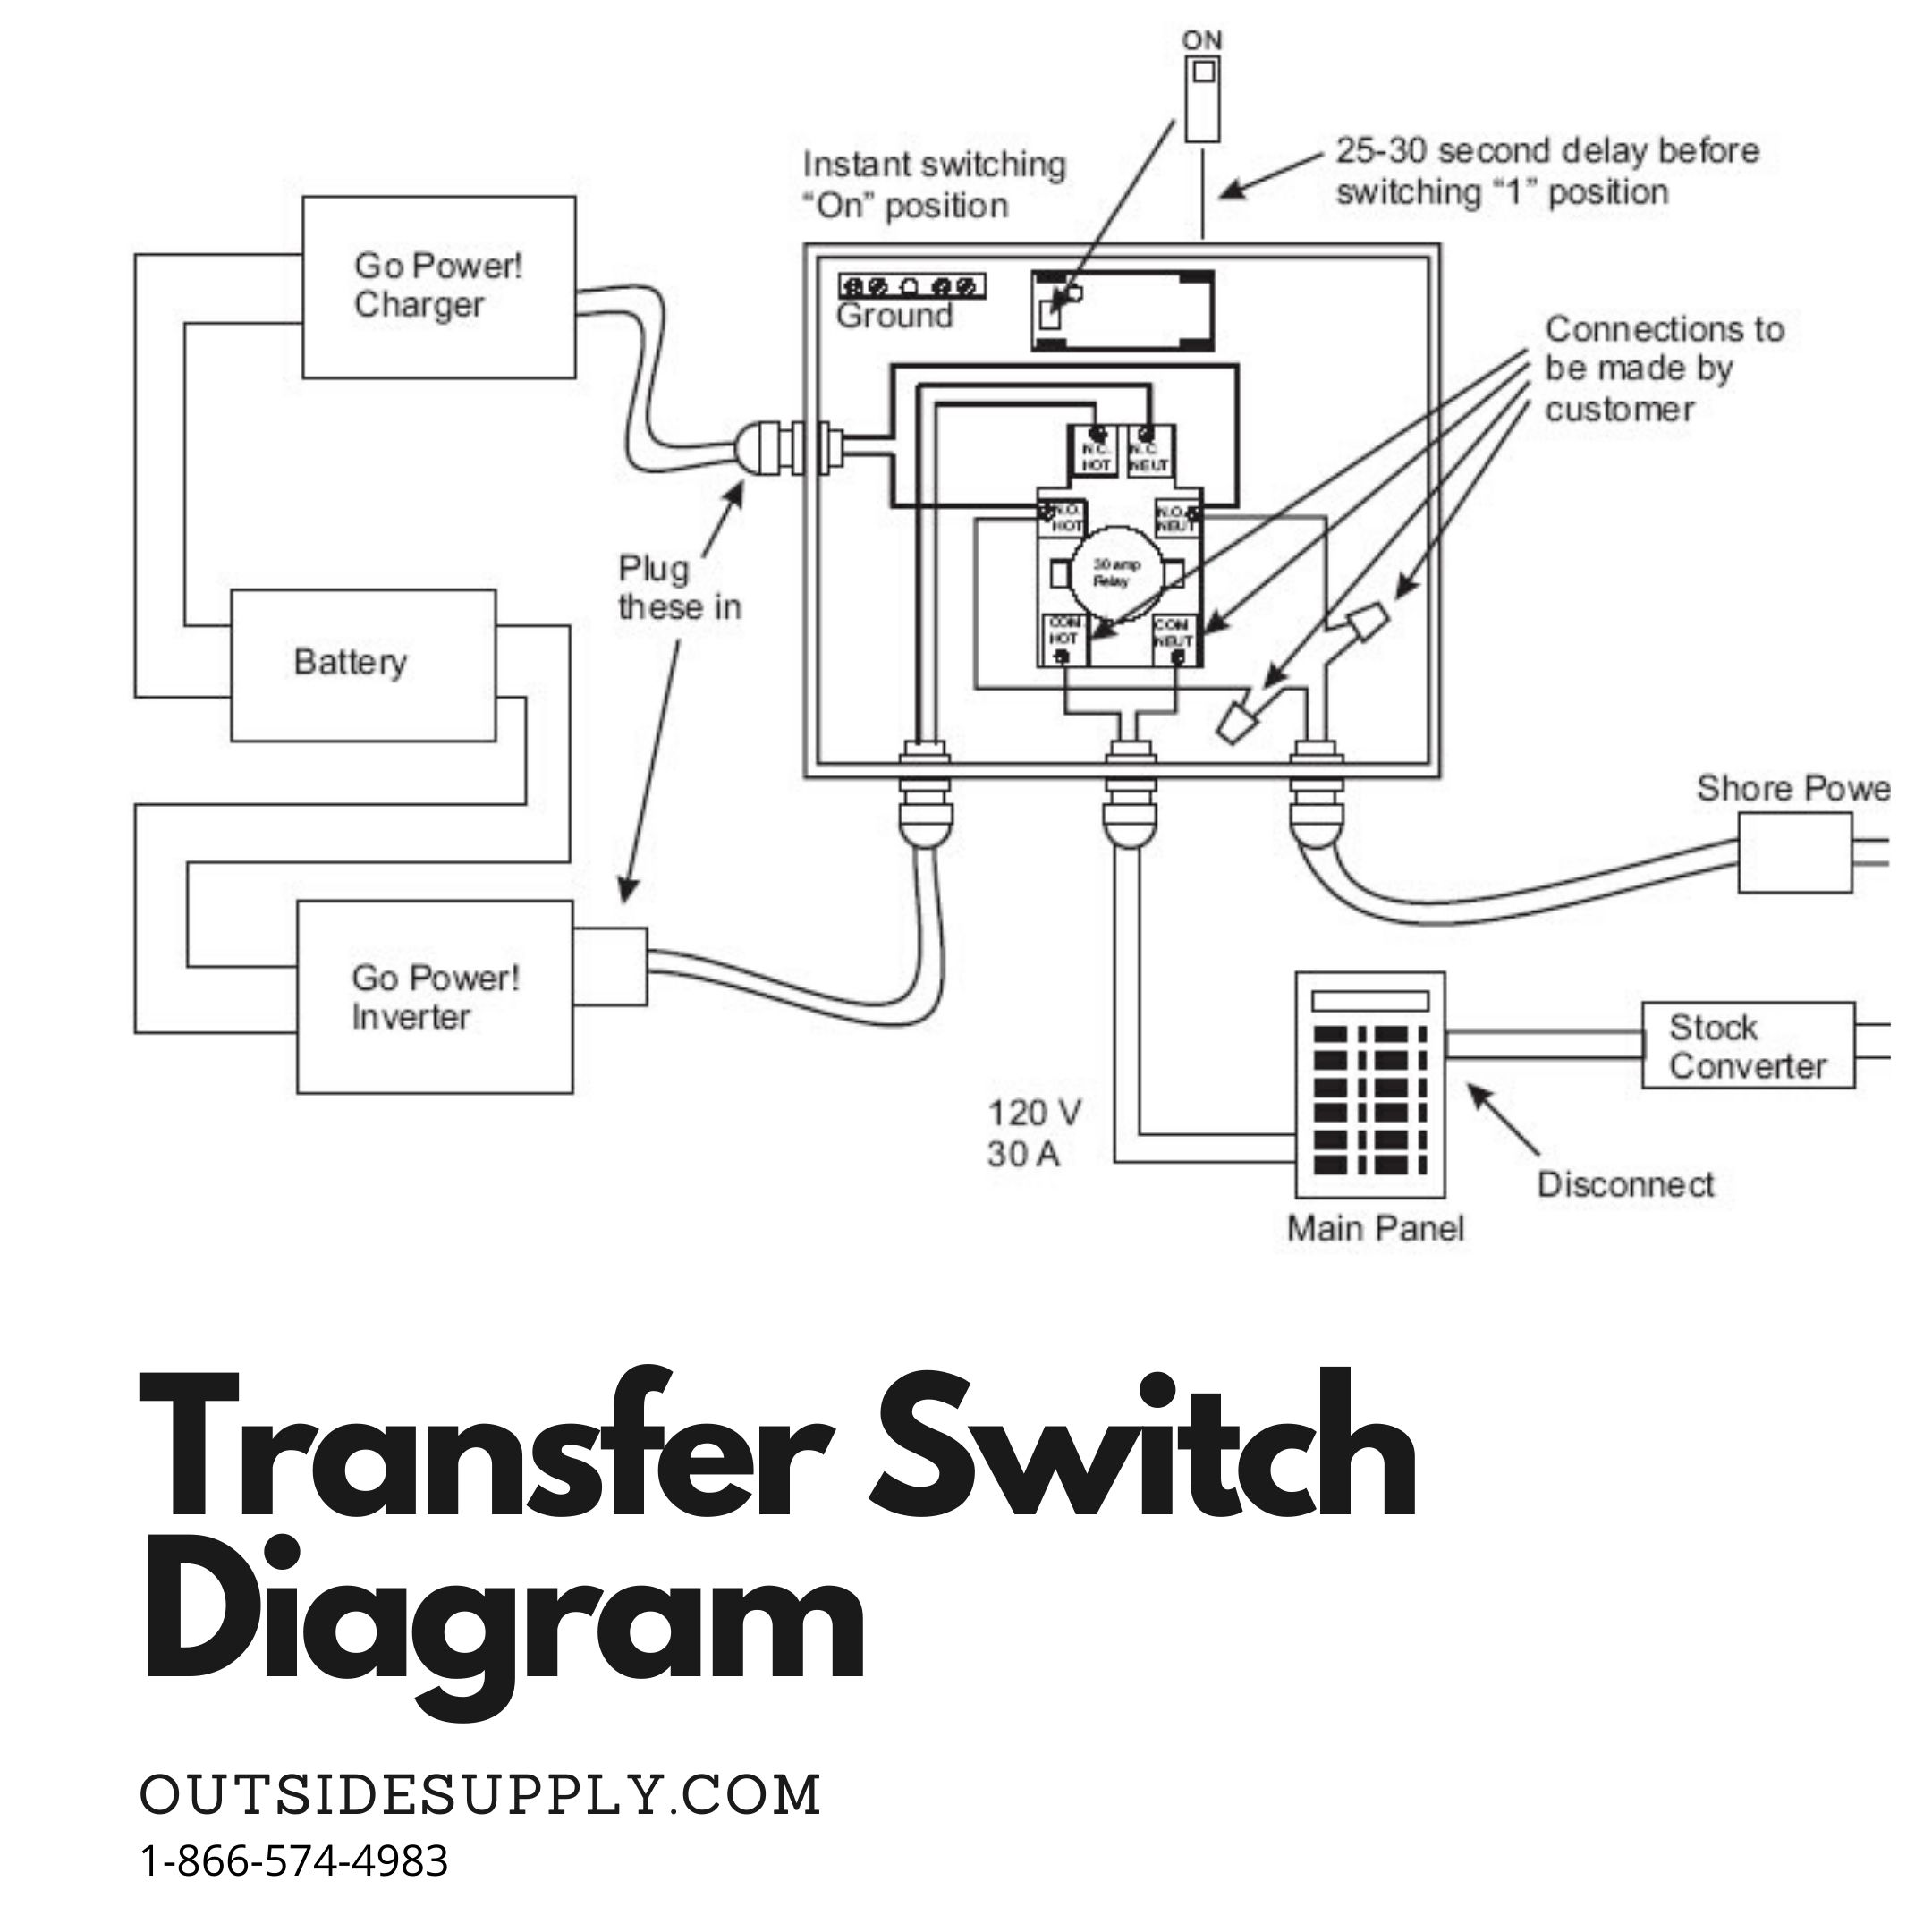 Kohler Transfer Switch Wiring Diagrams on onan generator transfer switch schematics